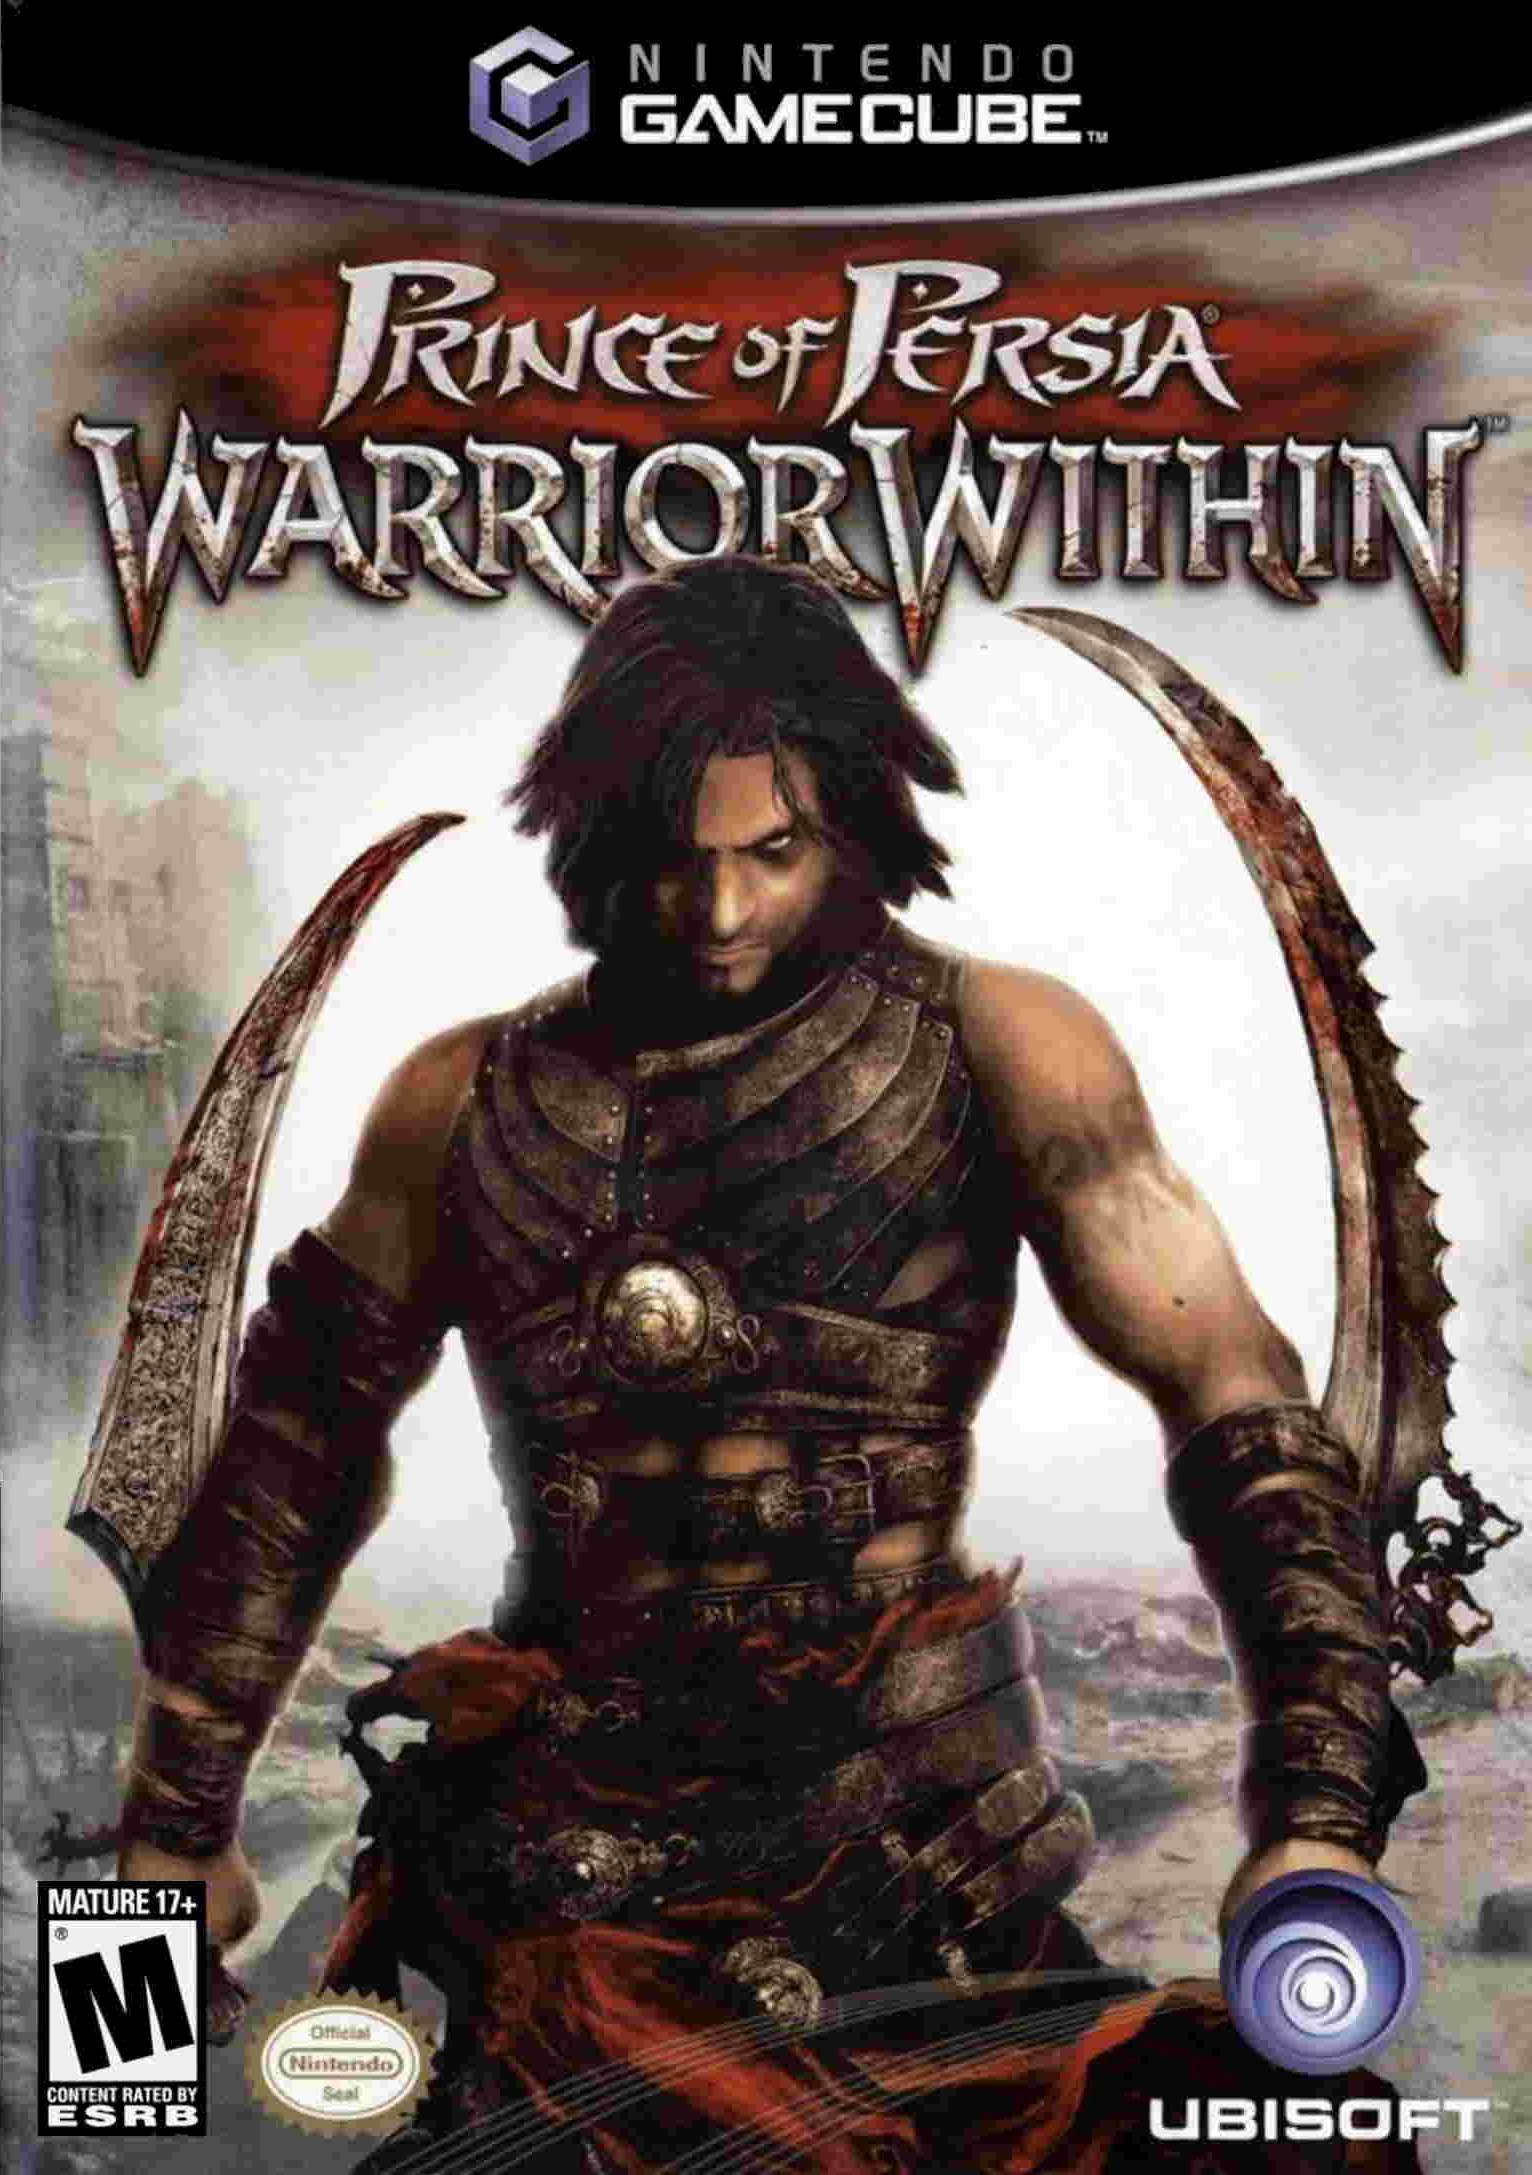 https://wiki.dolphin-emu.org/images/9/9e/Prince_of_Persia-Warrior_Within.jpg